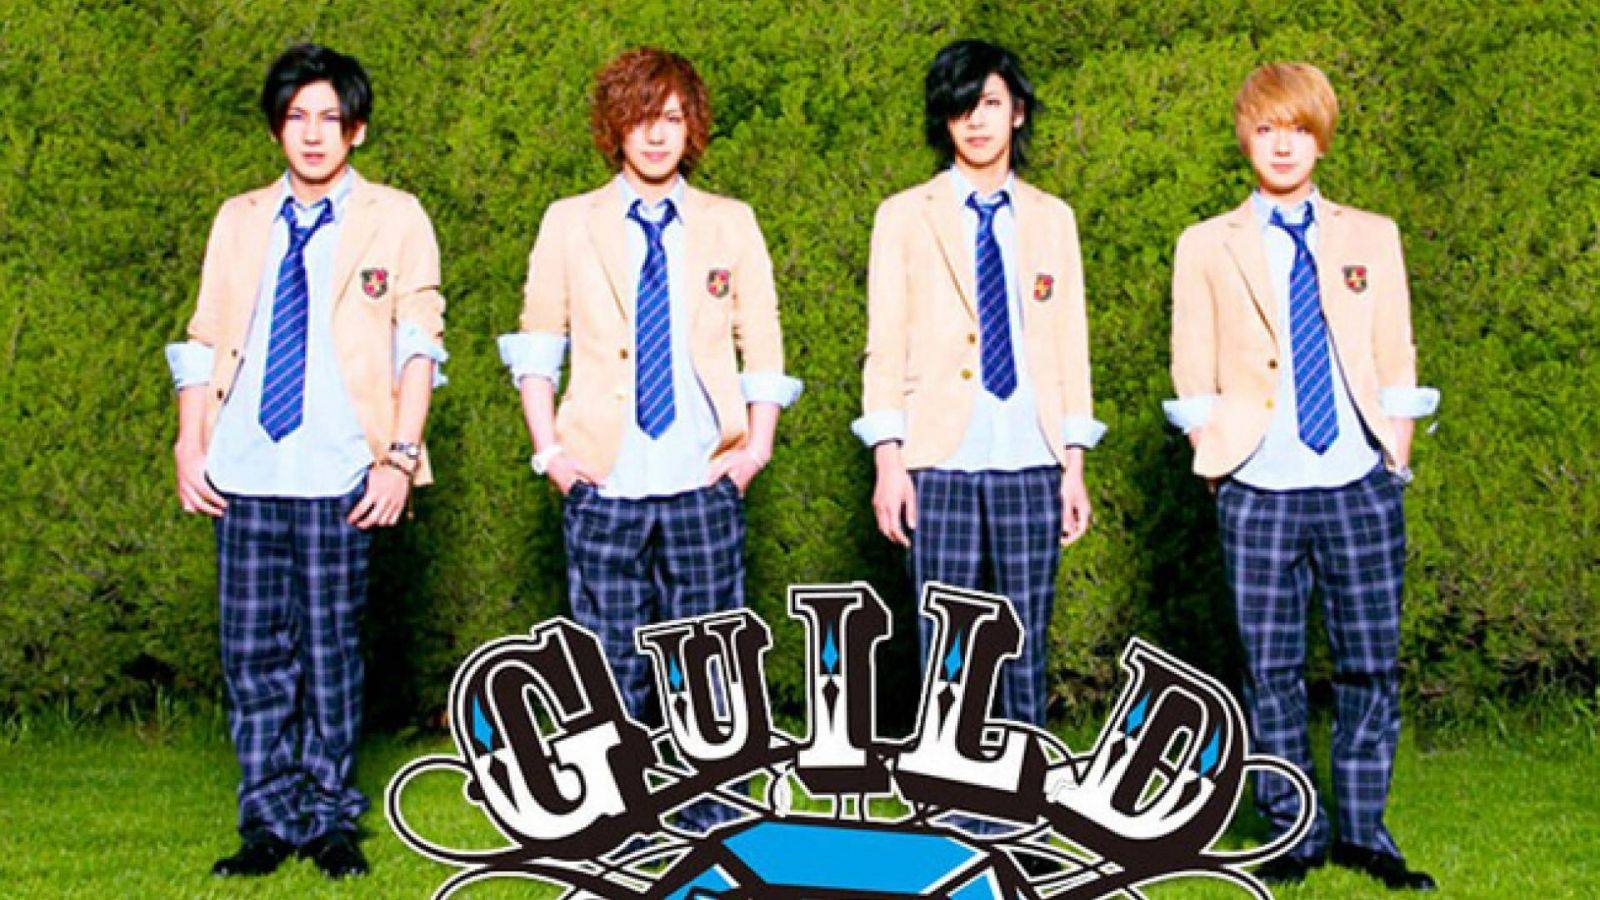 GUILD minialbumilla © euclid agency. All Rights Reserved.